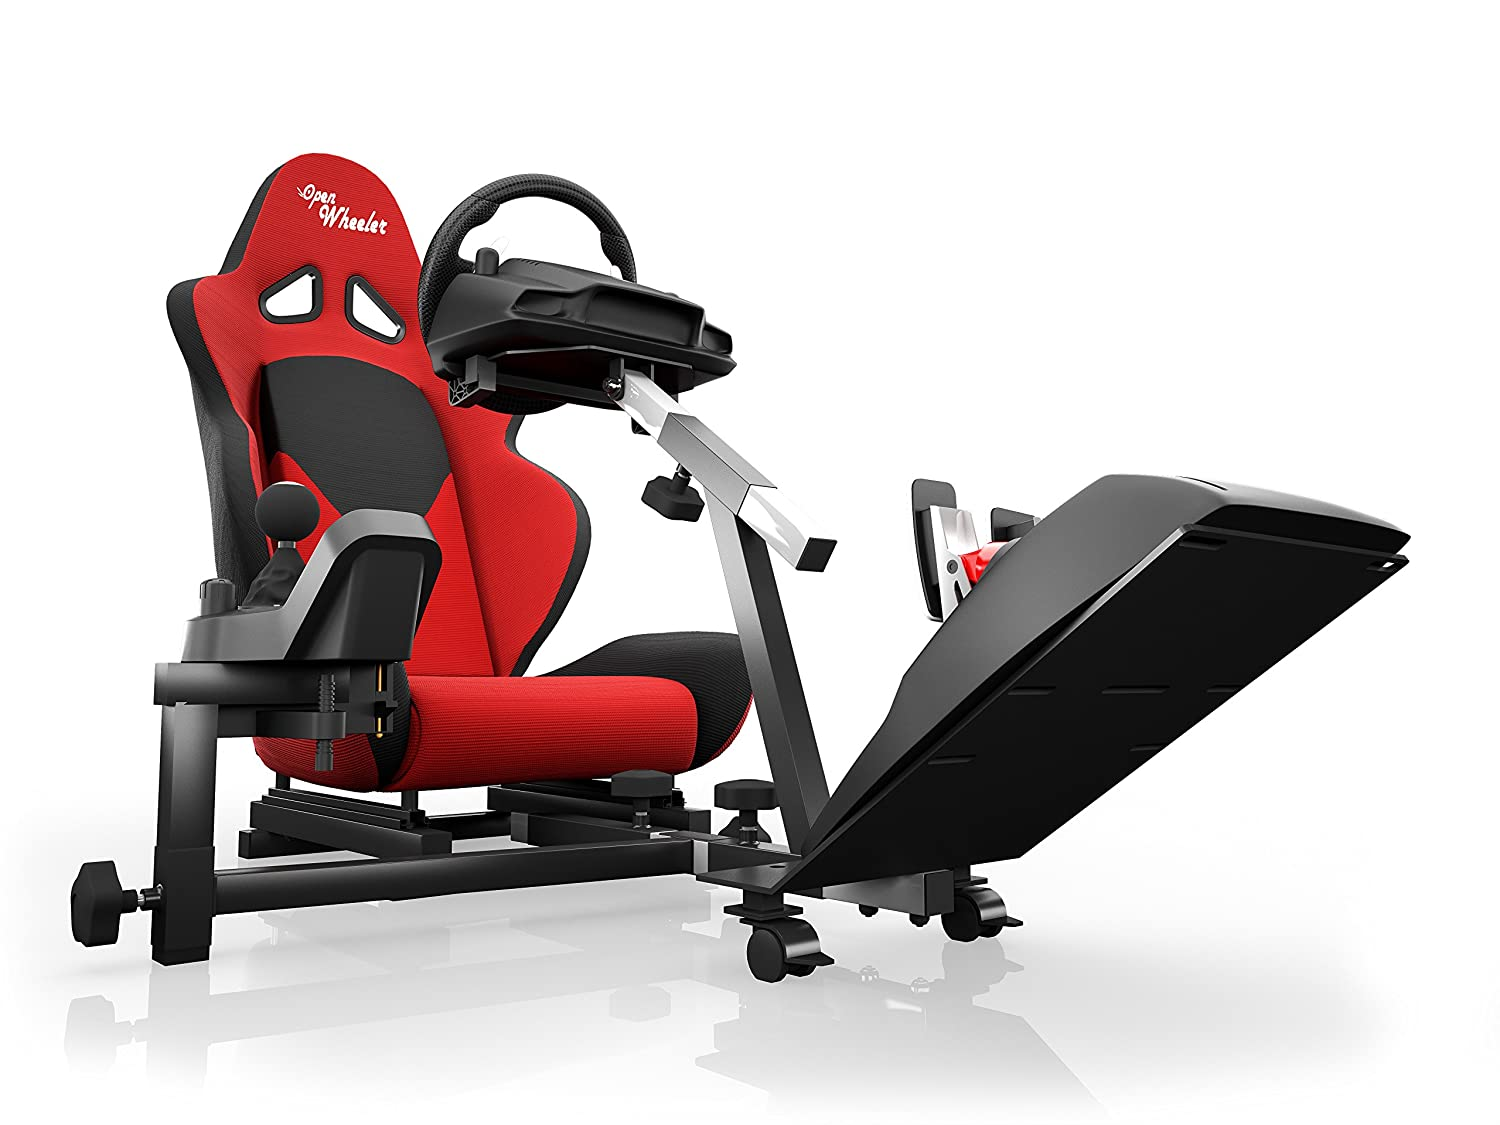 gaming chair 5 1 surround sound metal chairs ikea top add-on accessories for the thrustmaster tx xbox one racing wheel ferrari 458 italia edition ...